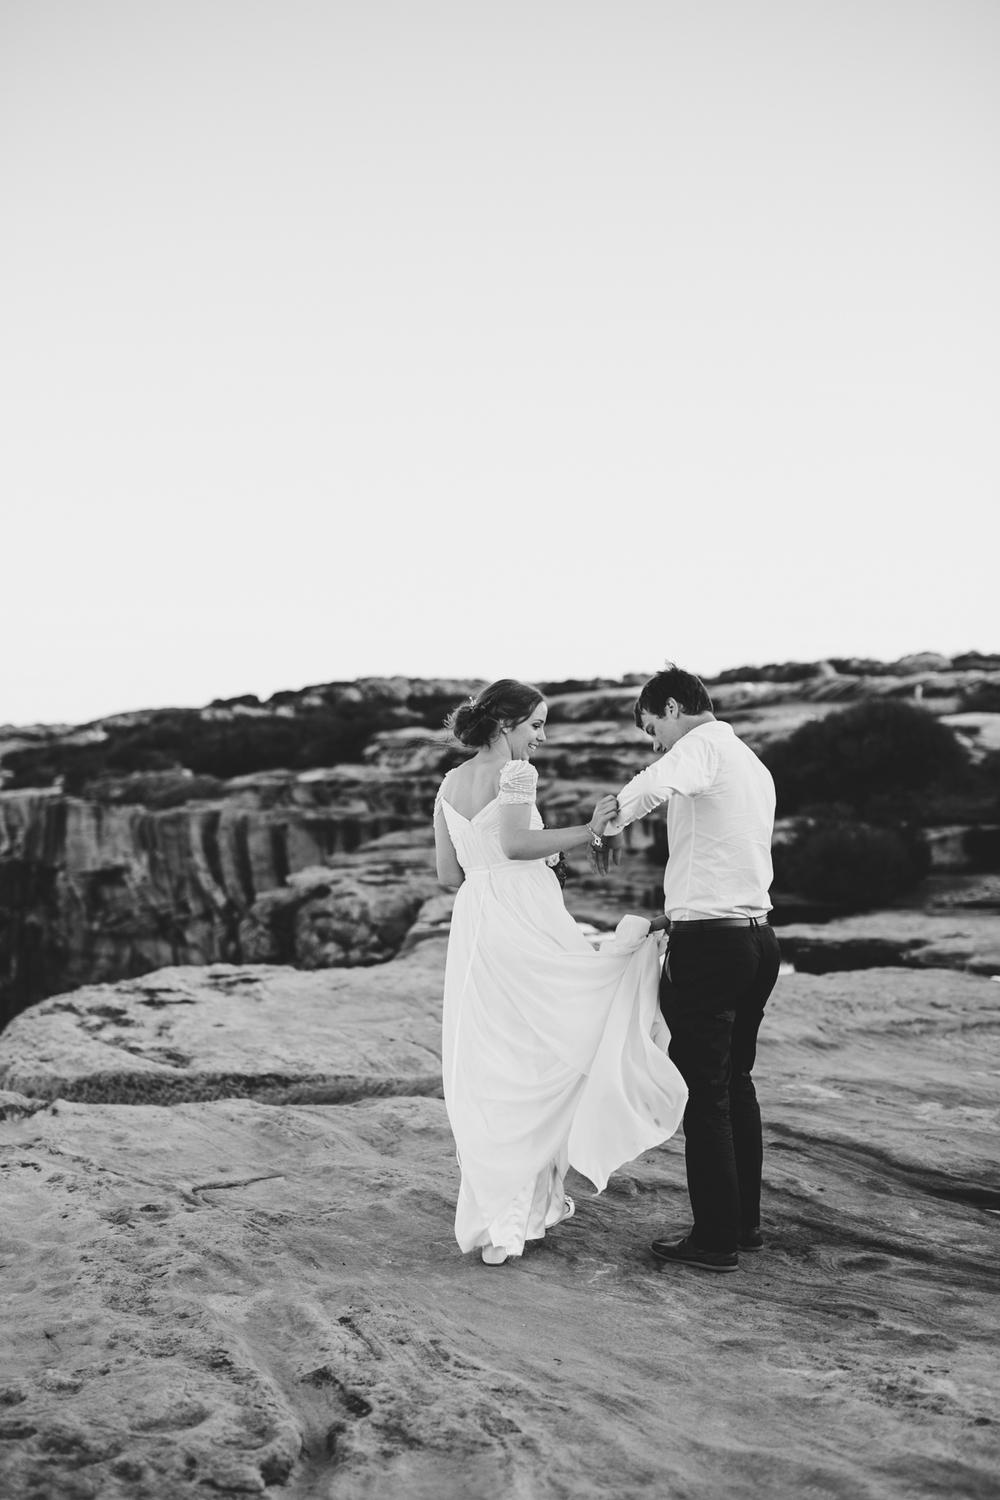 Sam & Leah - Coastal, Kurnell, Winter Wedding-141.jpg